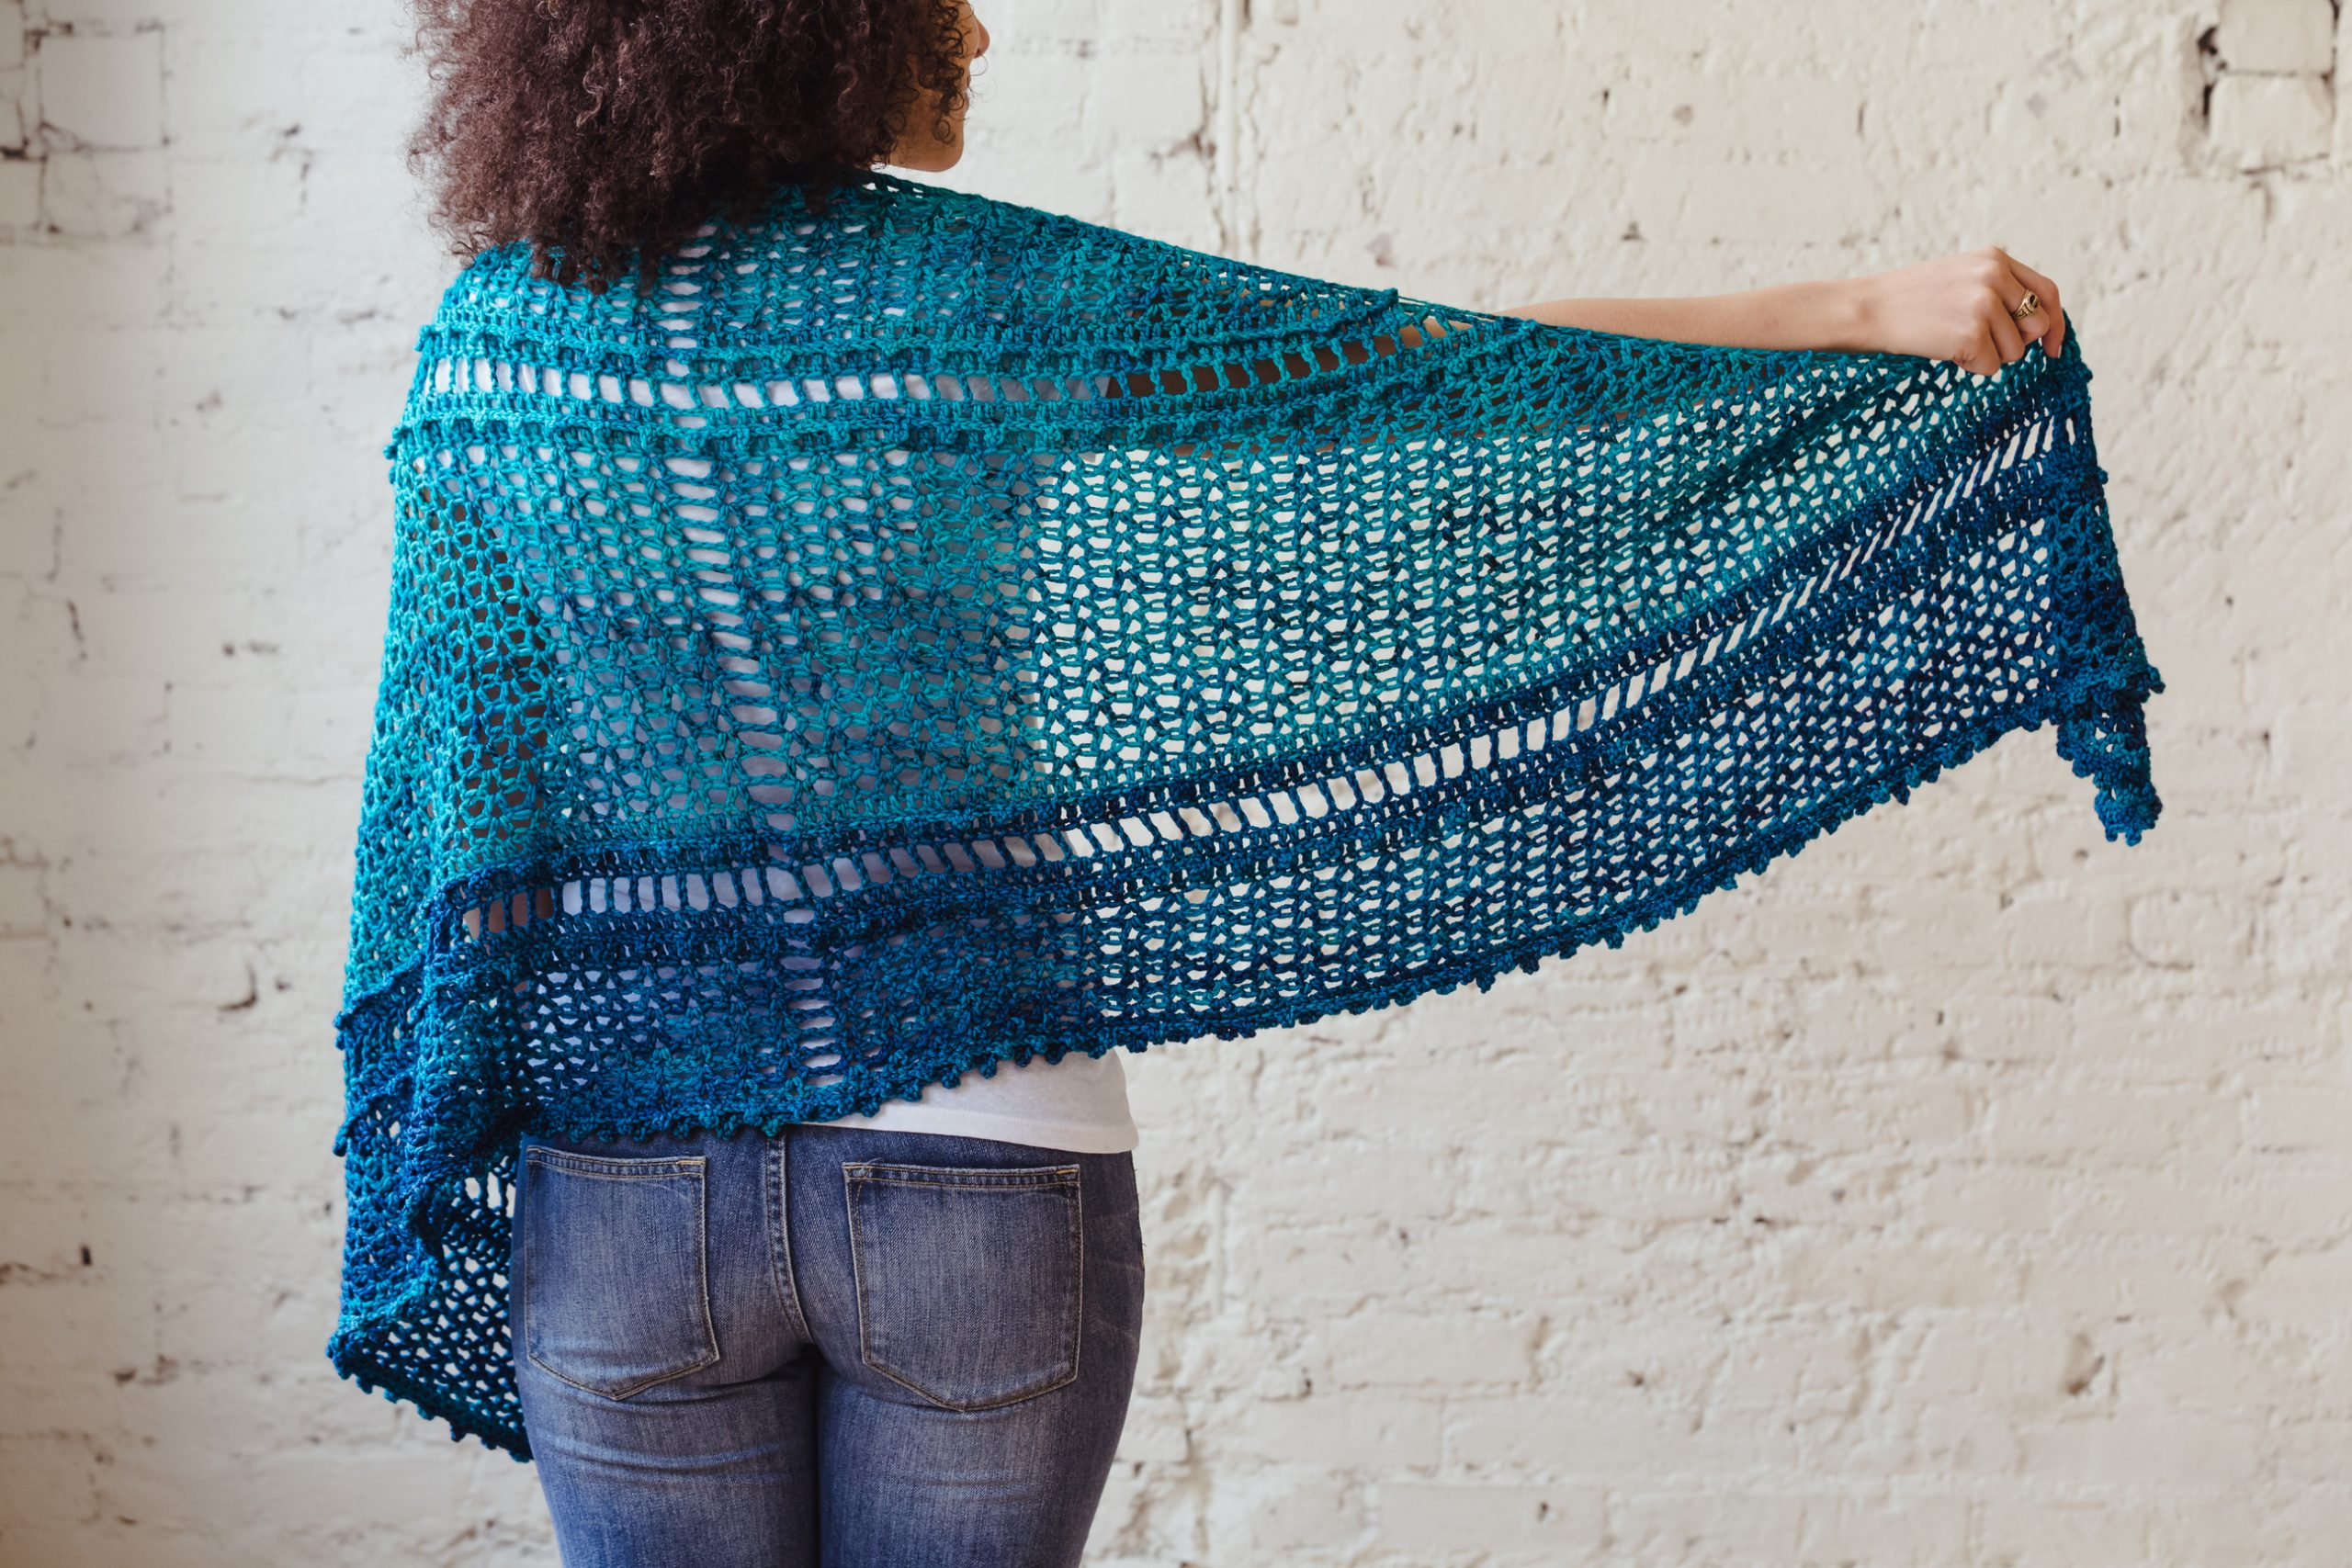 Serenity Shawl, a textured crescent crochet wrap pattern from TL Yarn Crafts